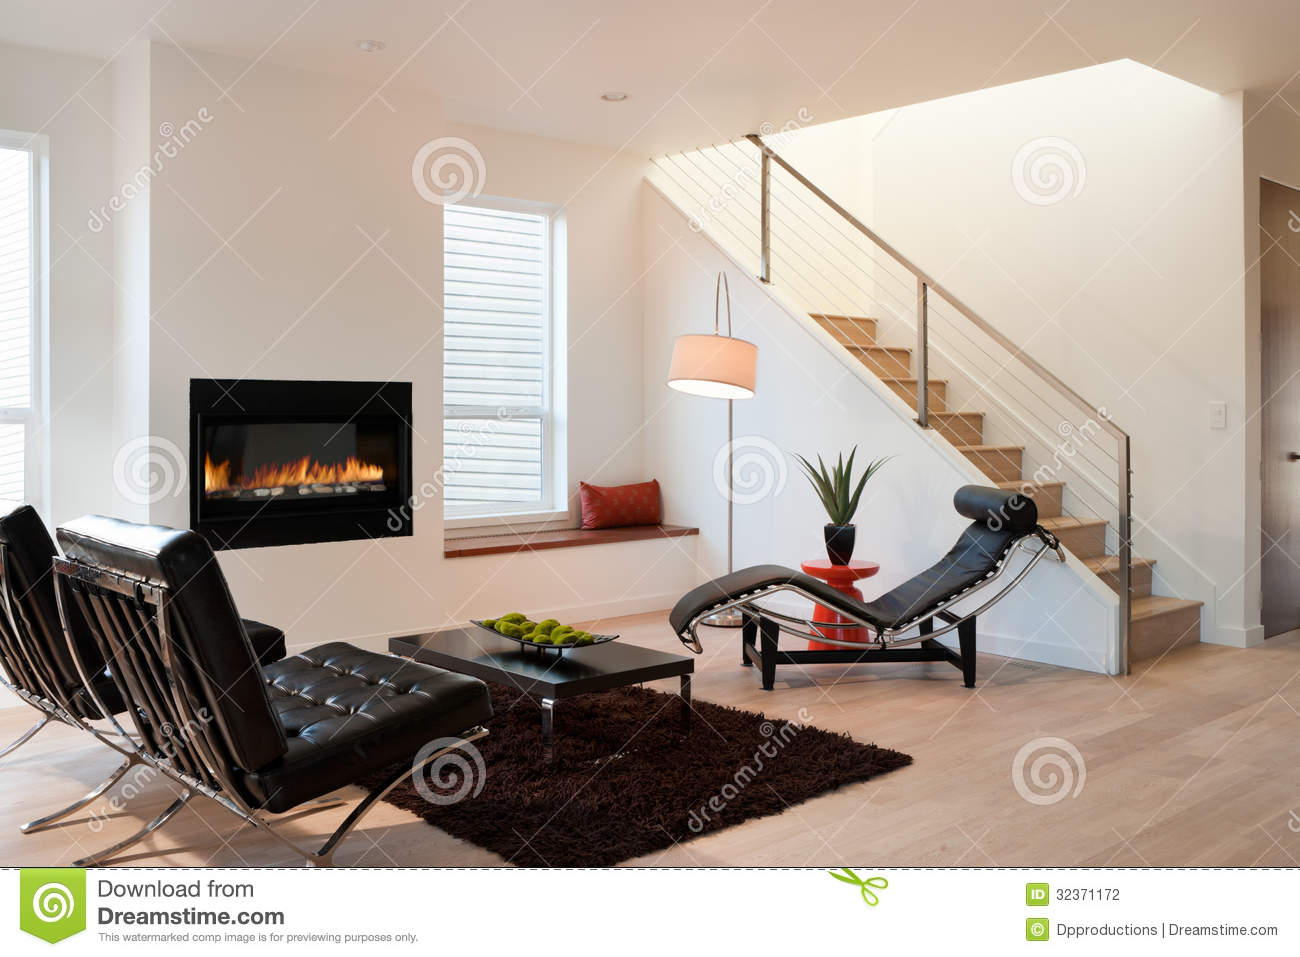 Salon de luxe moderne photographie stock image 32371172 - Photos de salon moderne ...